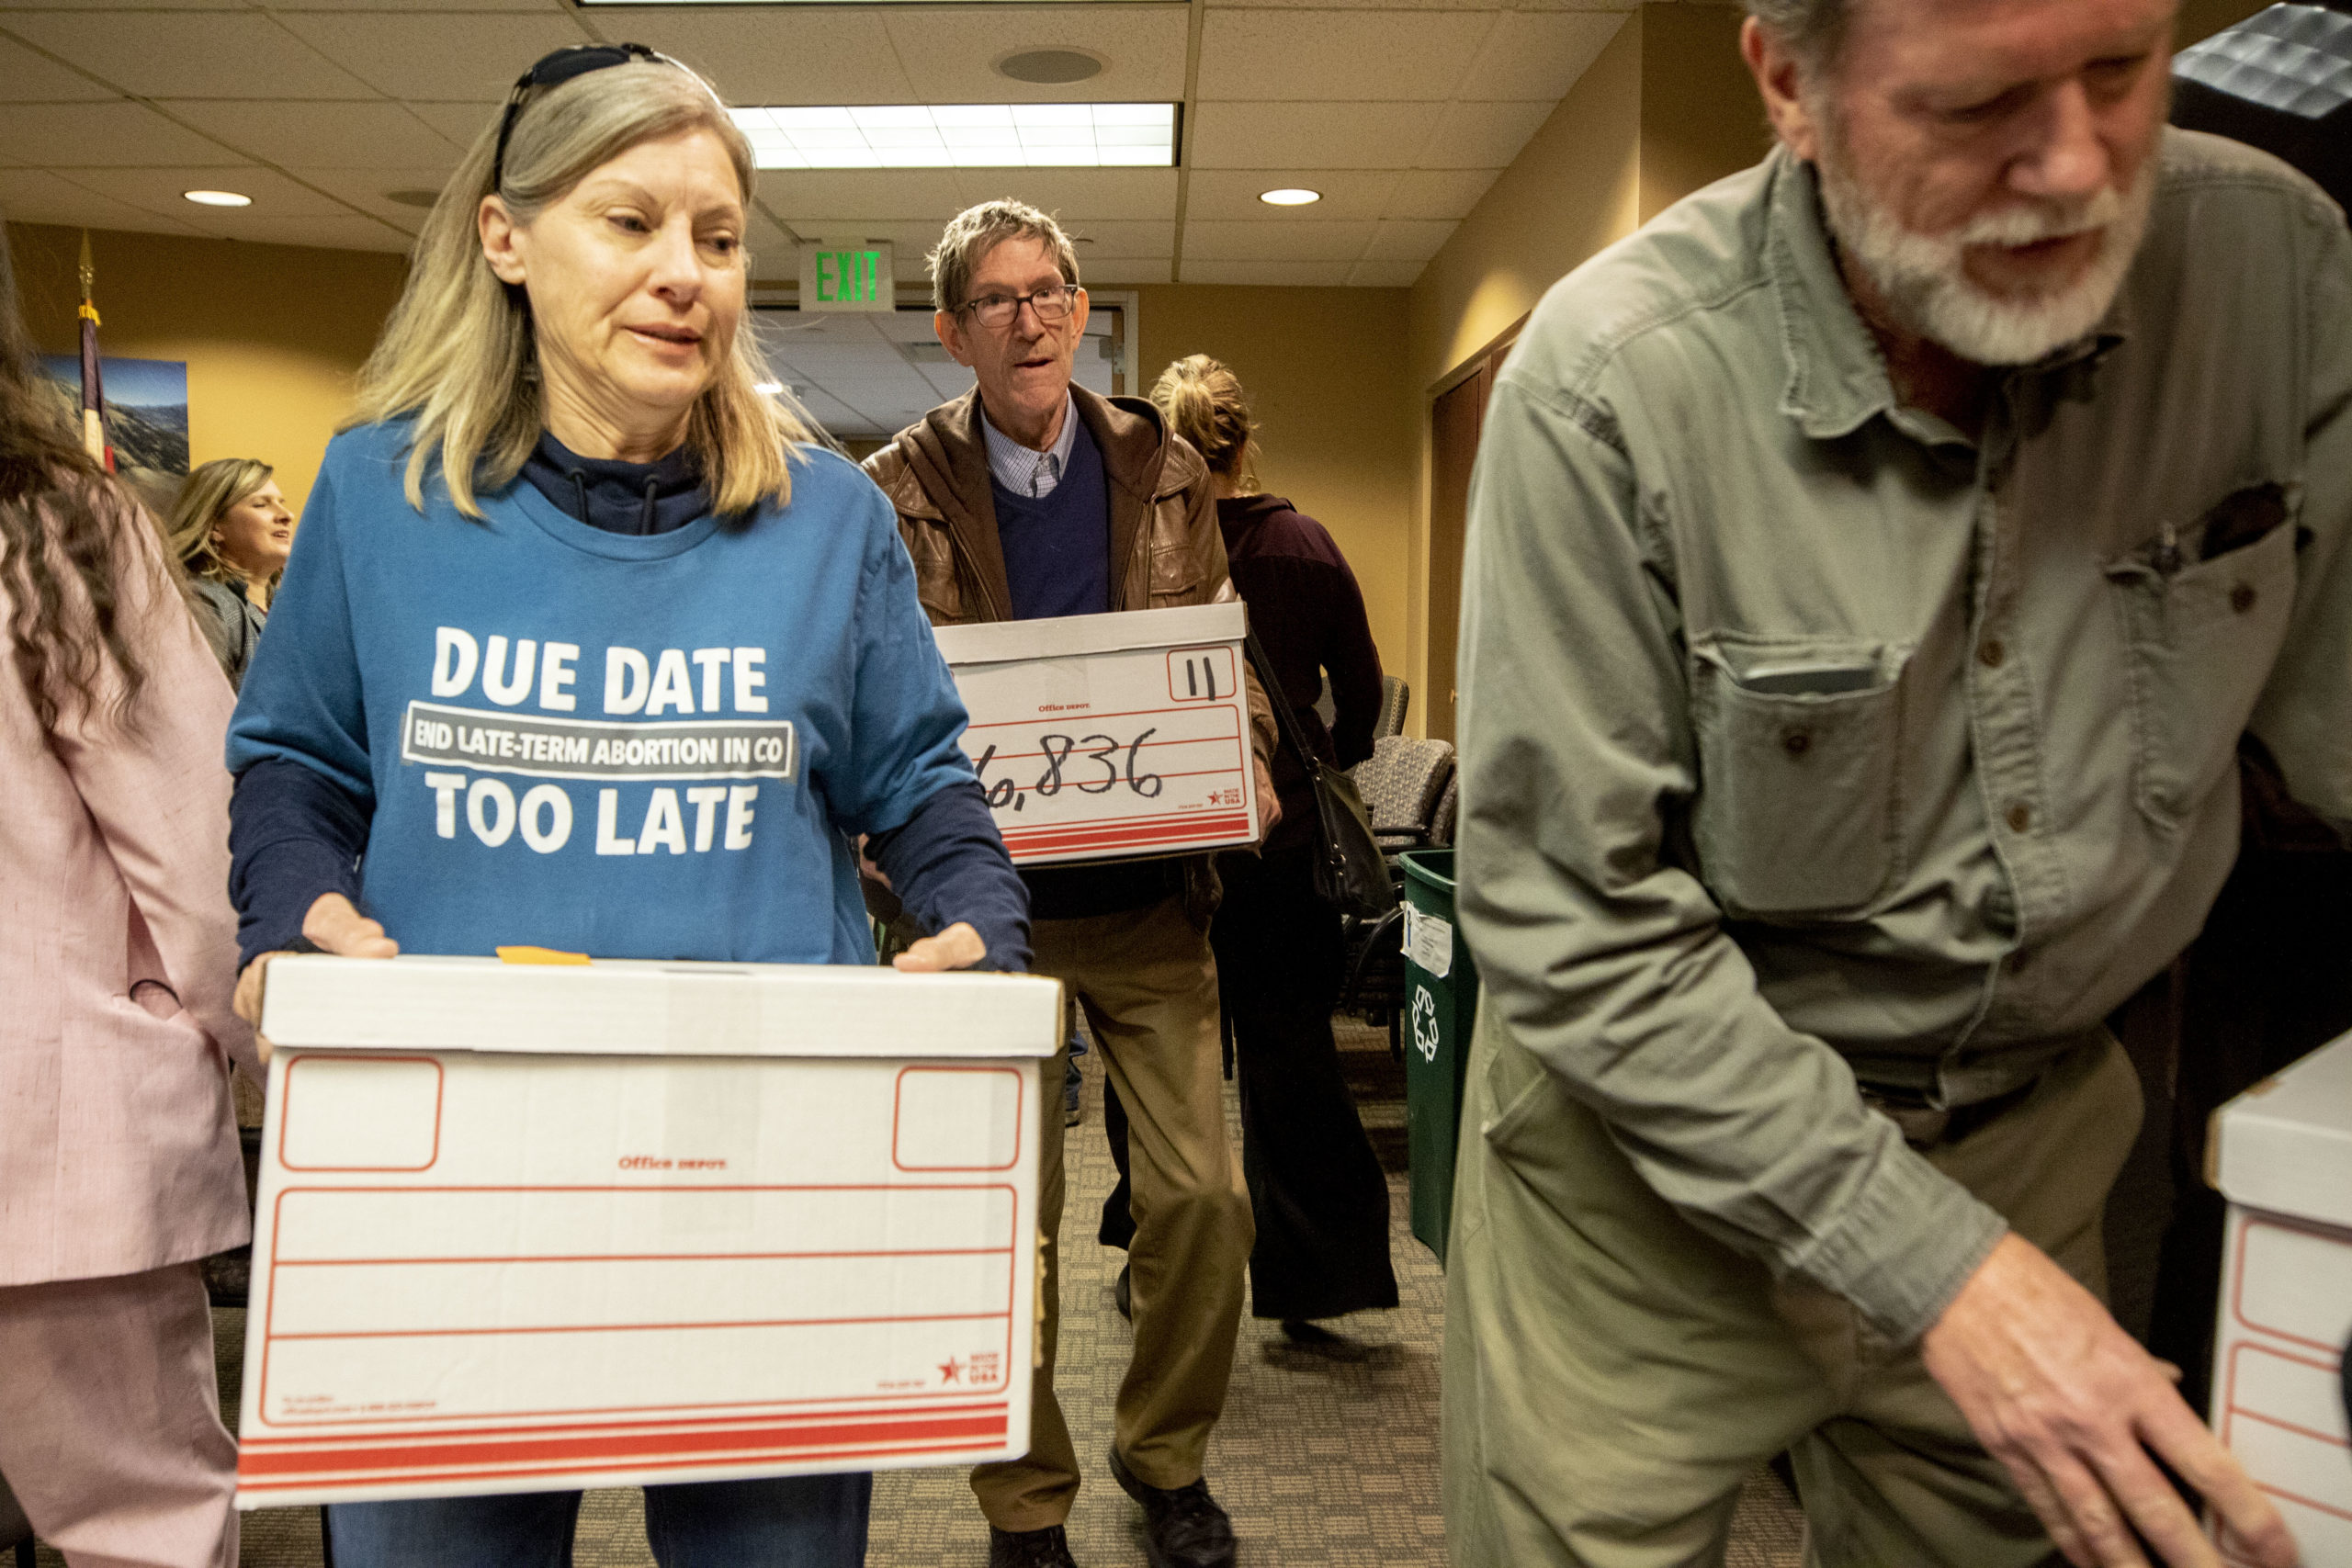 Pro-life advocates deliver thousands of signed petitions to the Colorado Secretary of State's office, initiating a ballot measure process that could ban abortions after 22 weeks of pregnancy. March 4, 2020. (Kevin J. Beaty/Denverite)